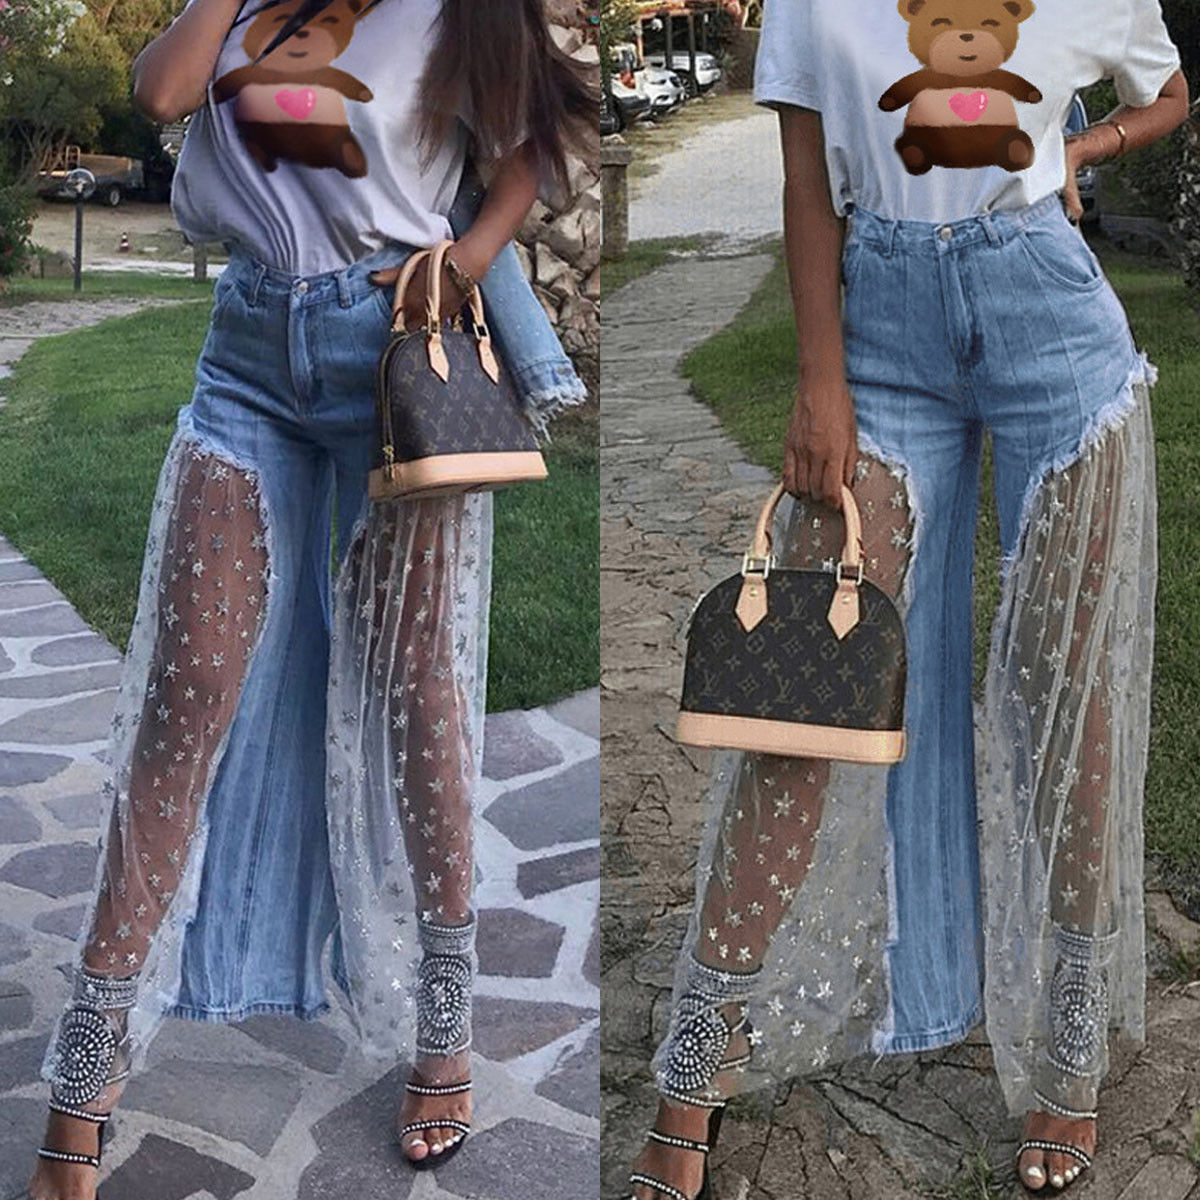 New Women Fashion Charm Casual Destroyed Split Joint Lace Tulle Fit High Waist Pants Trousers